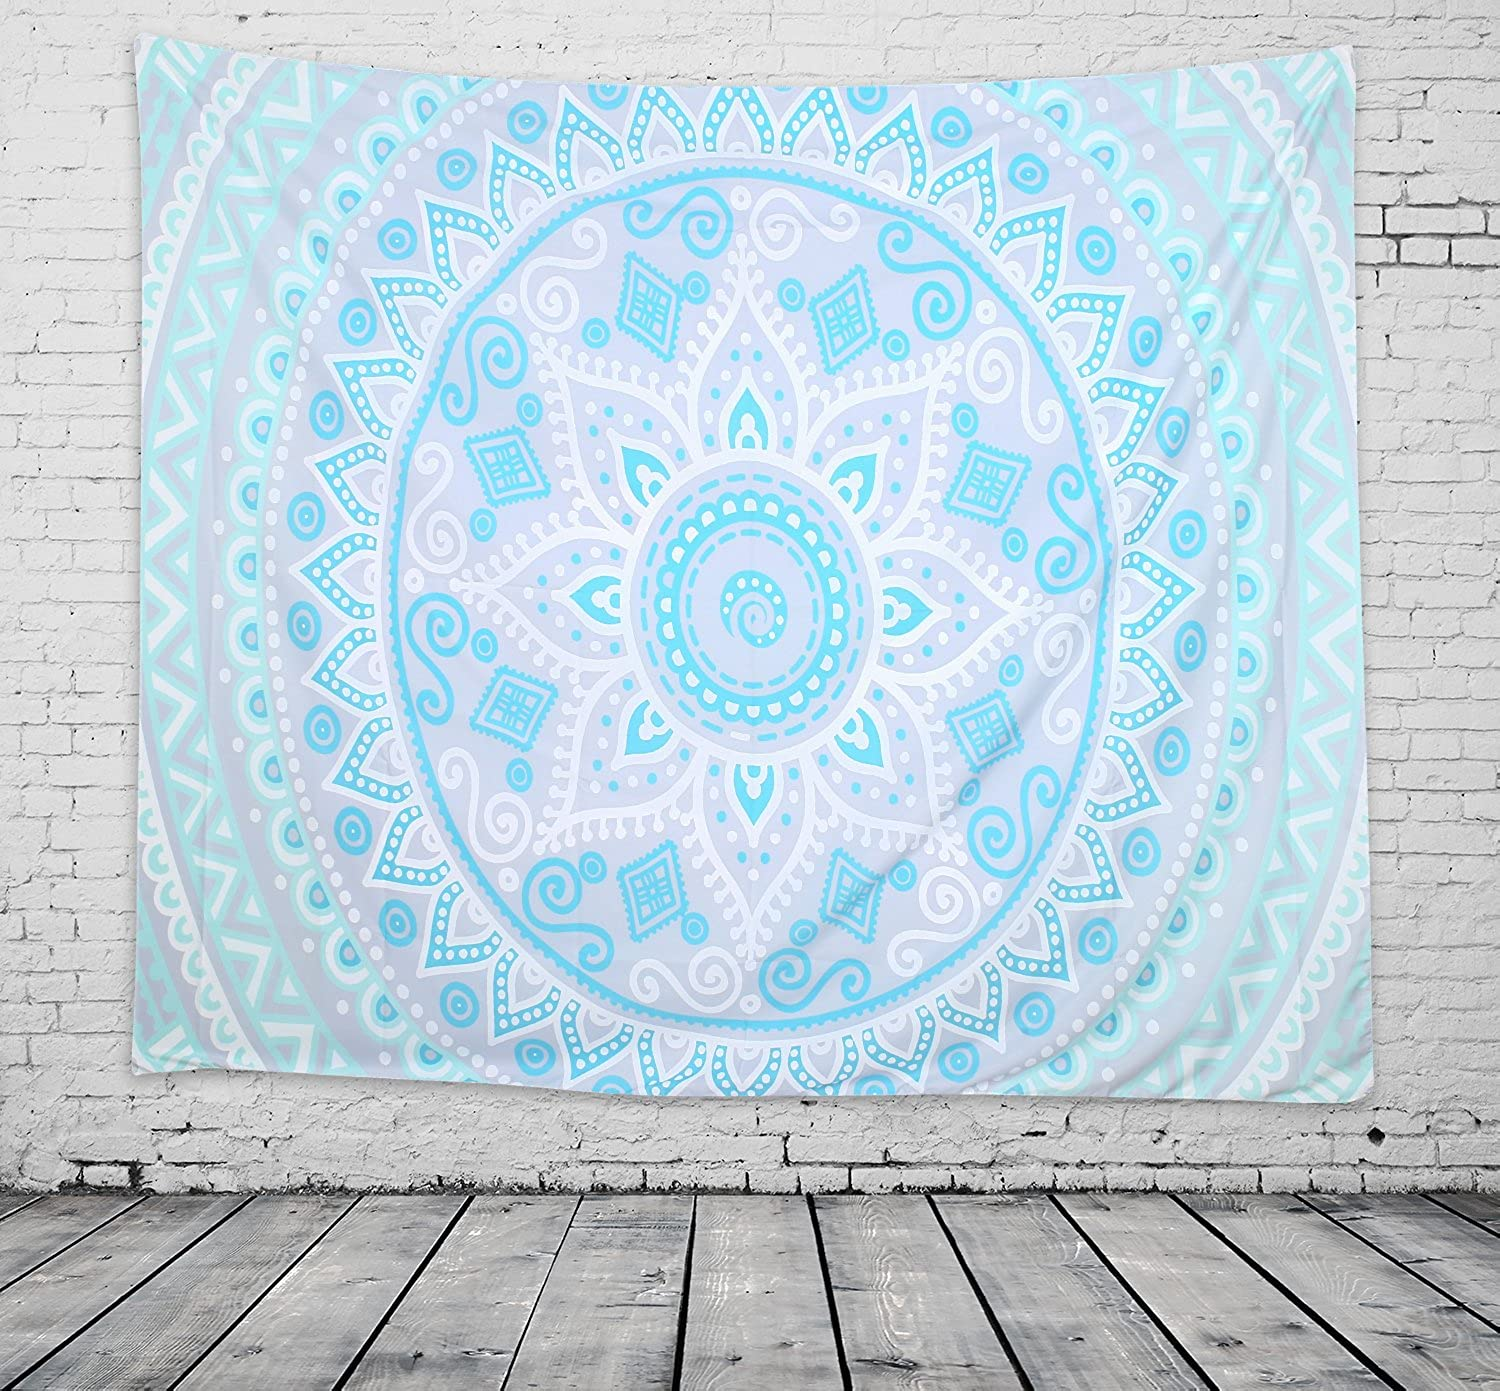 Lvtree Tapestry Wall Hanging Wall Tapestry Blanket Psychedelic 3D Printing with Art Nature Home Decorations